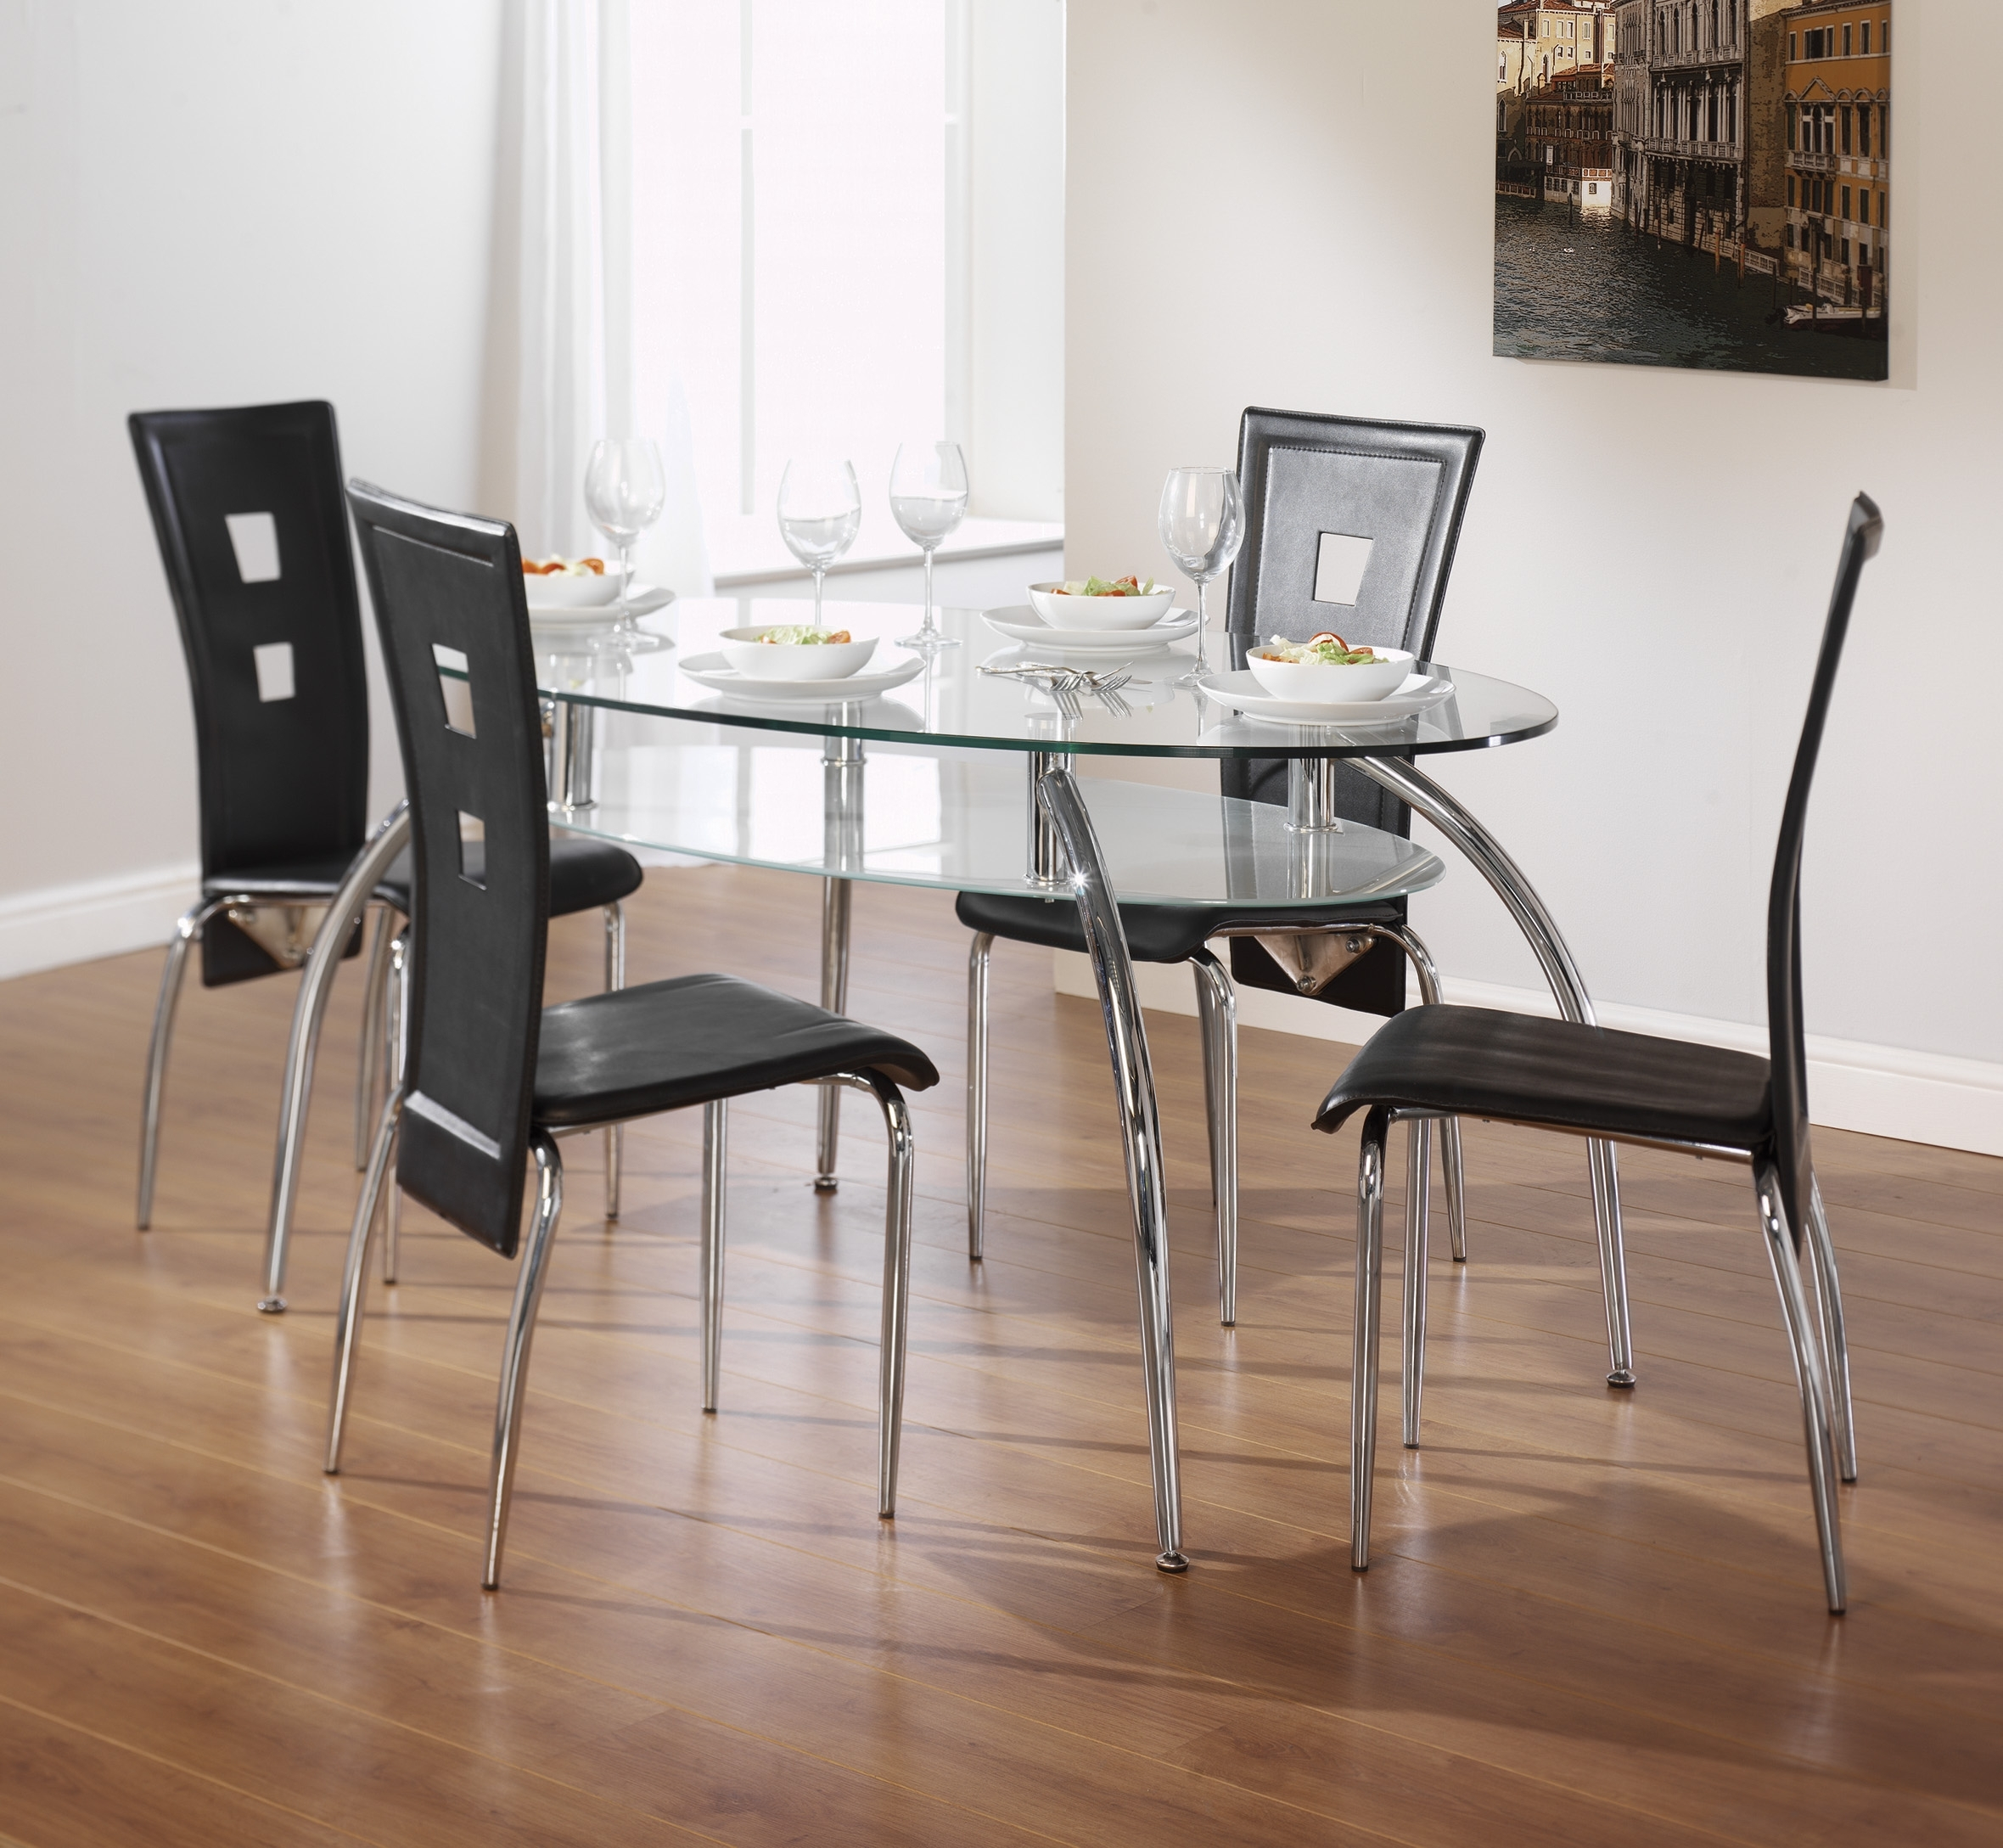 Preferred Dining Tables At Aintree Liquidation Centre Regarding Glass Dining Tables With Oak Legs (View 13 of 25)